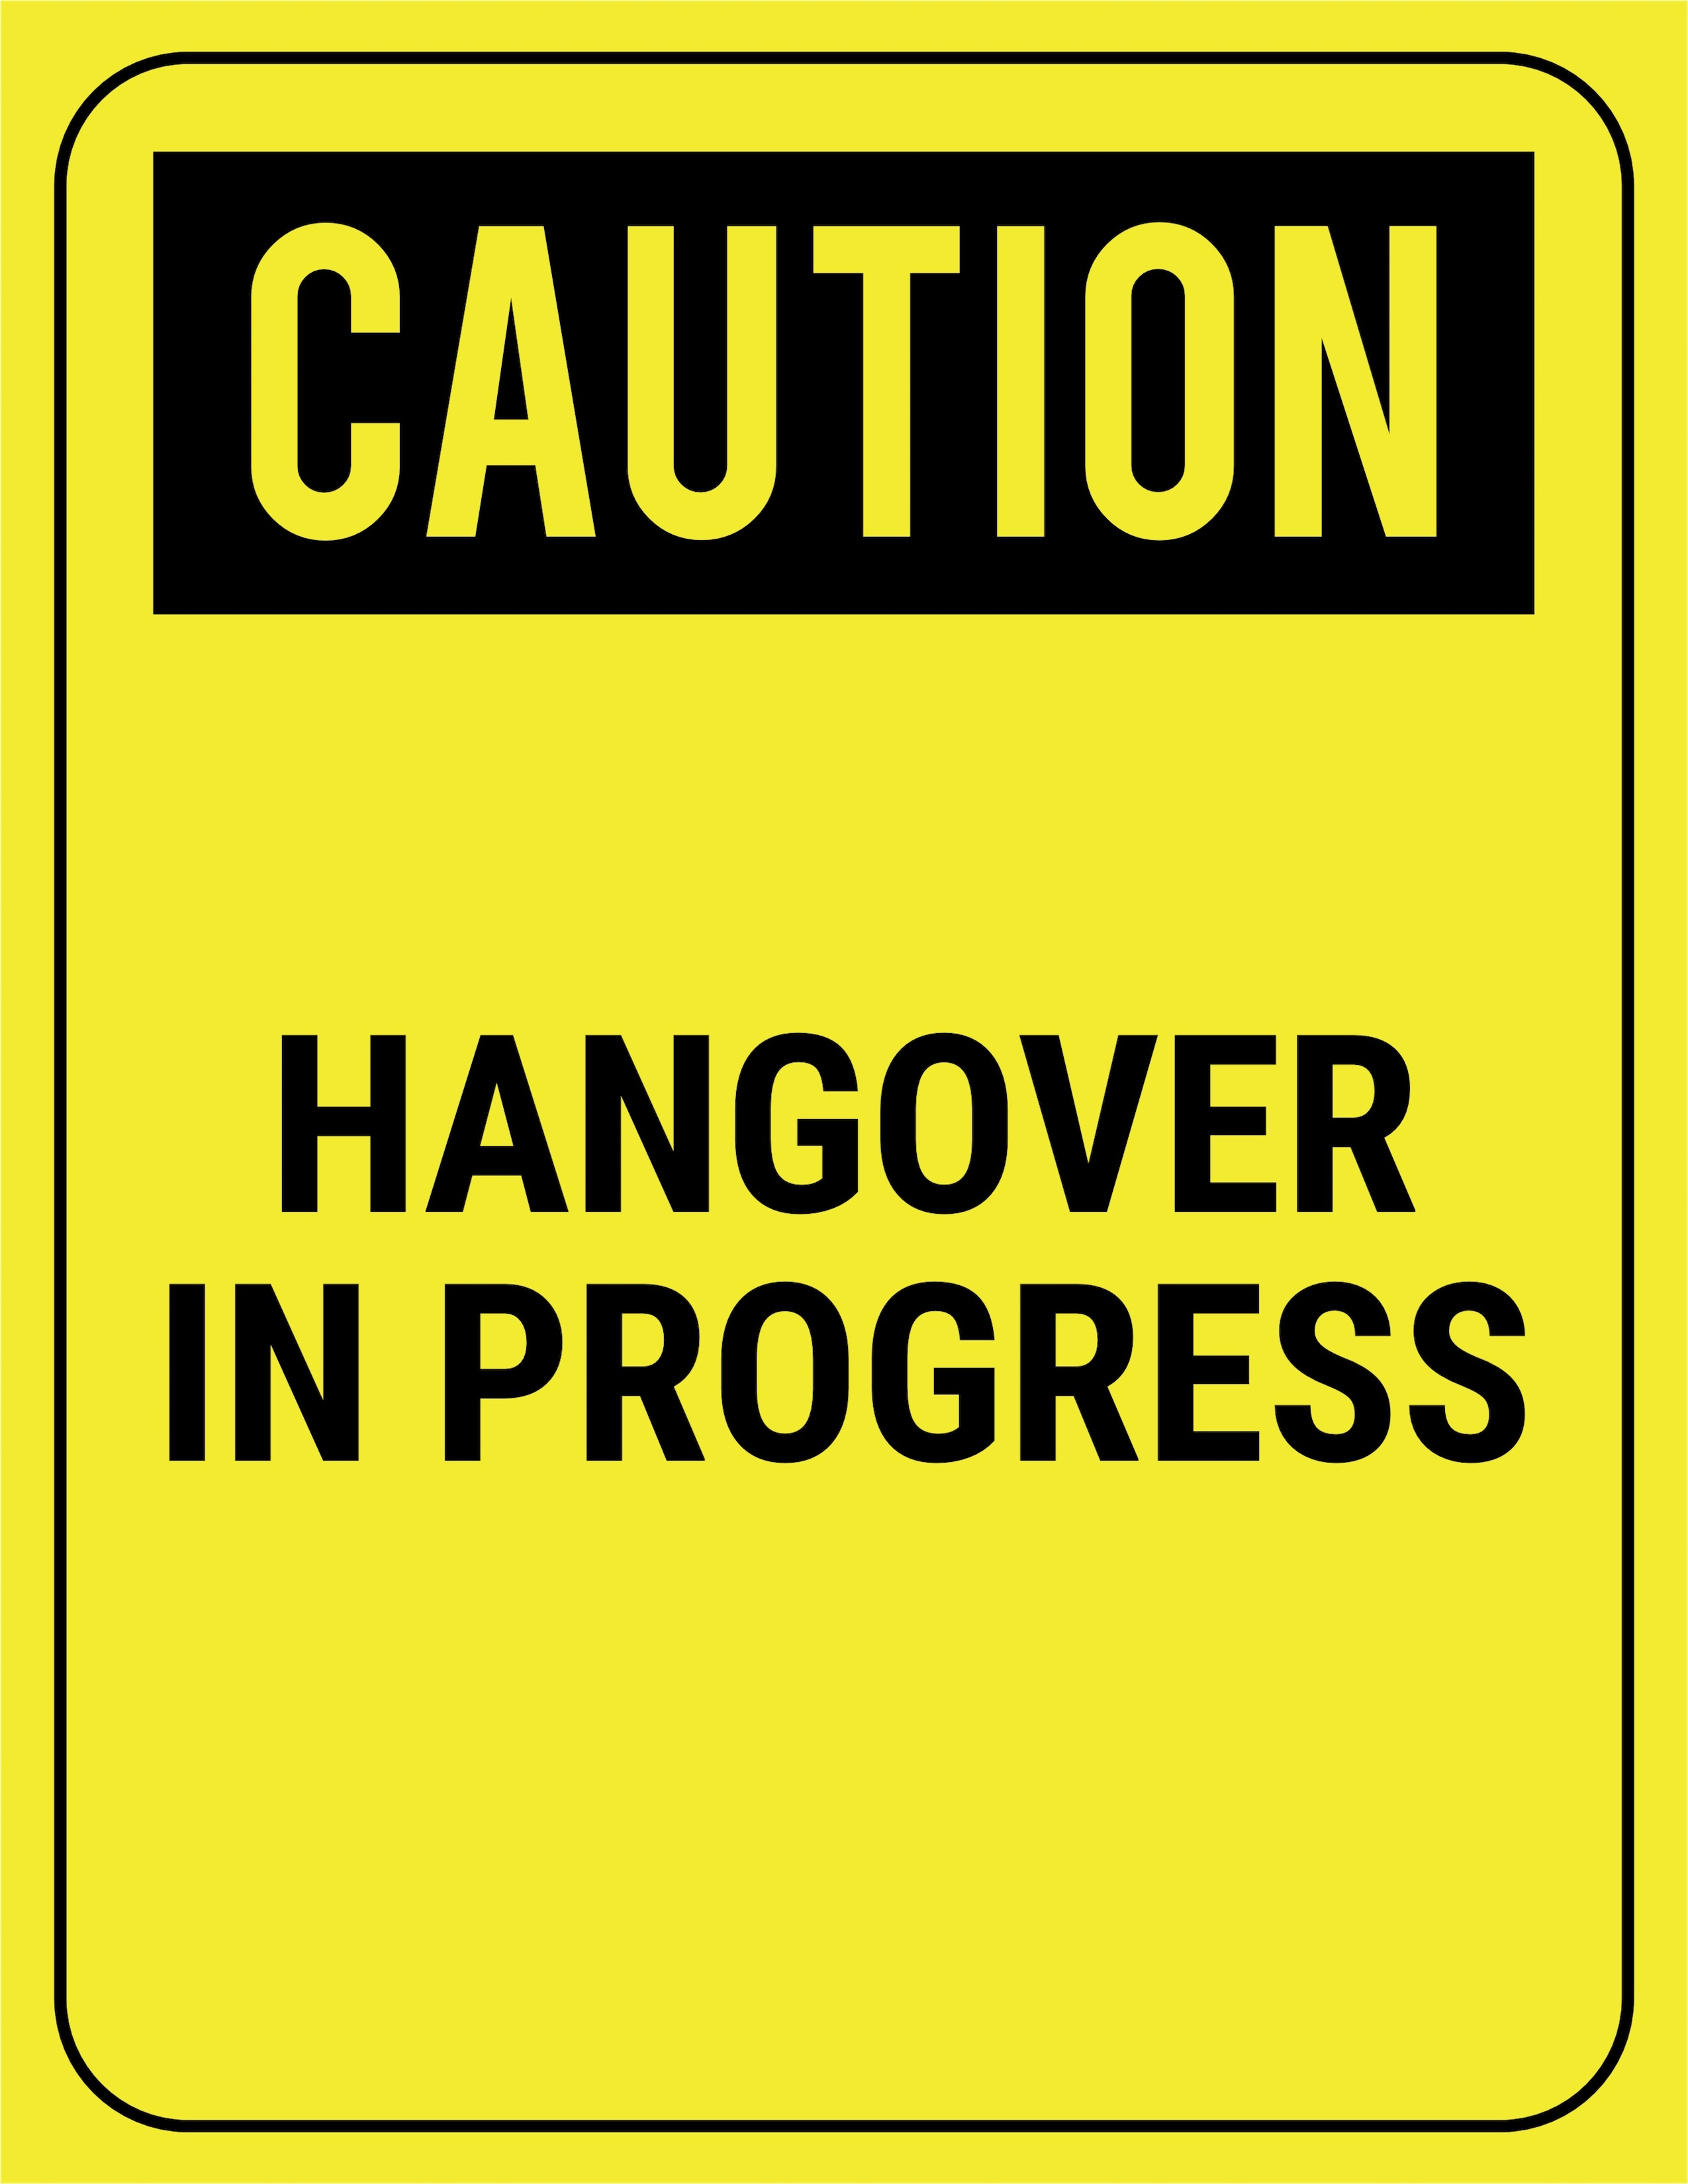 Funny Safety Signs To Download And Print - Free Printable Safety Signs